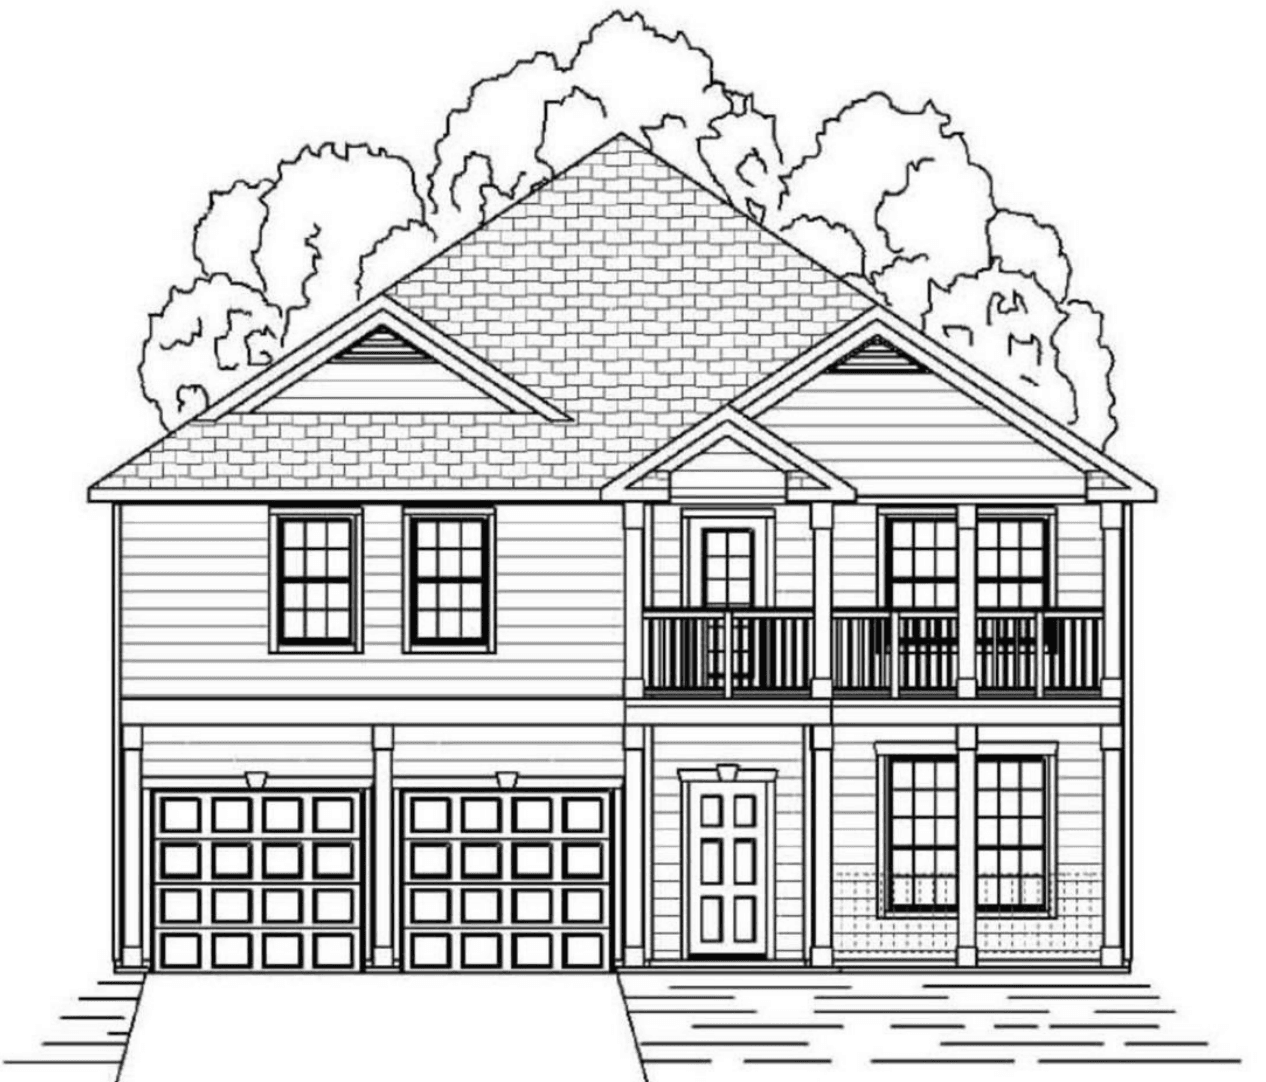 http://partners-dynamic.bdxcdn.com/Images/Homes/HistoryMakerHomes/max1500_32983131-190319.png